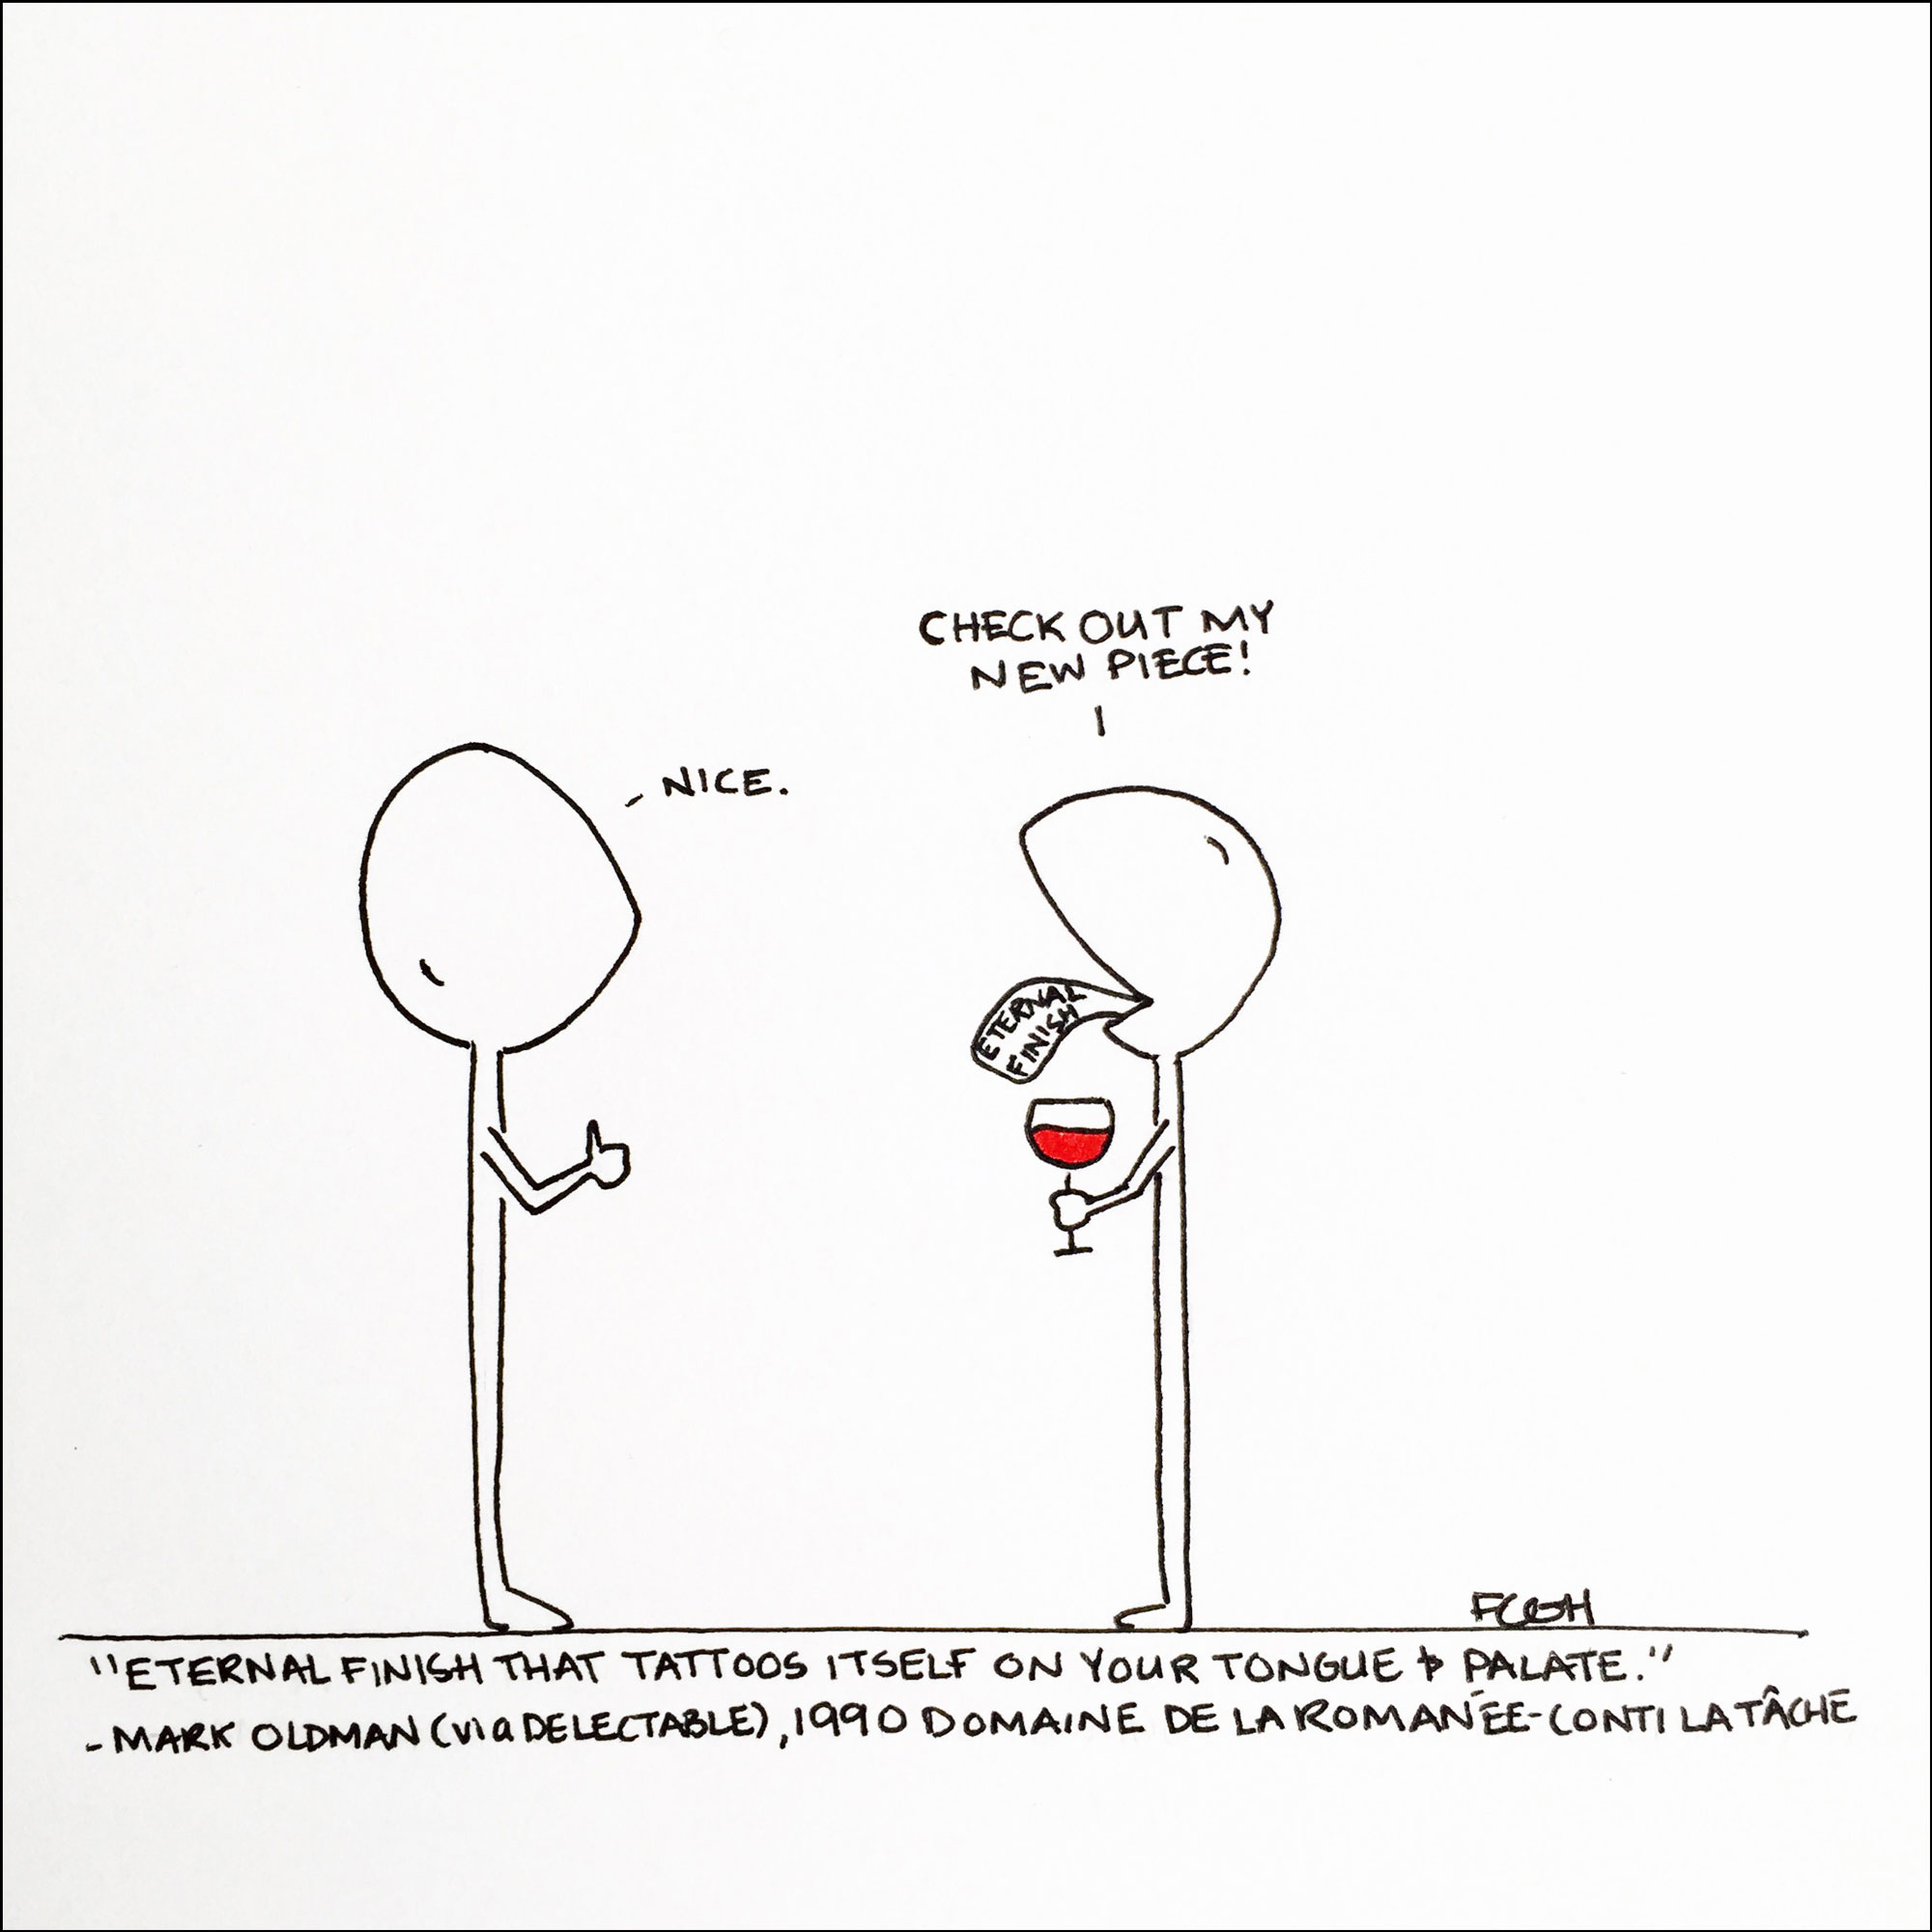 3 Comics that Illustrate the Taste of Pinot Noir